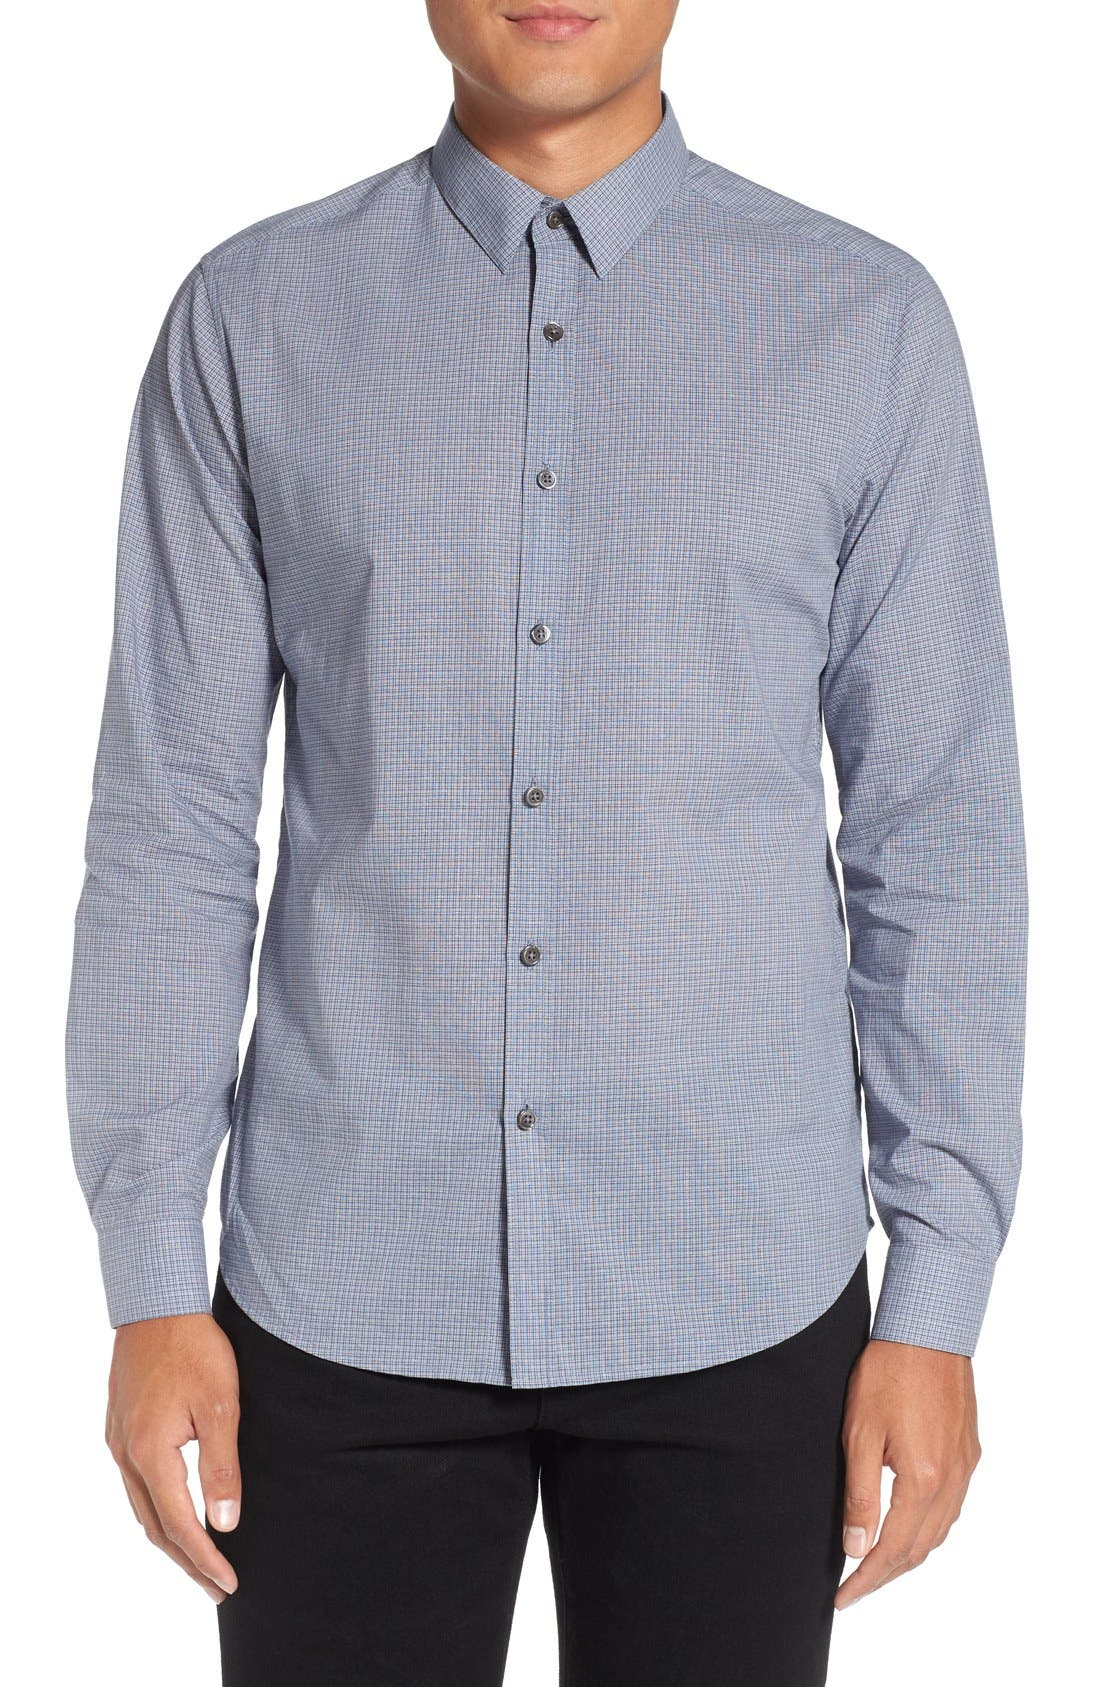 THEORY 'Zack' Trim Fit Sport Shirt